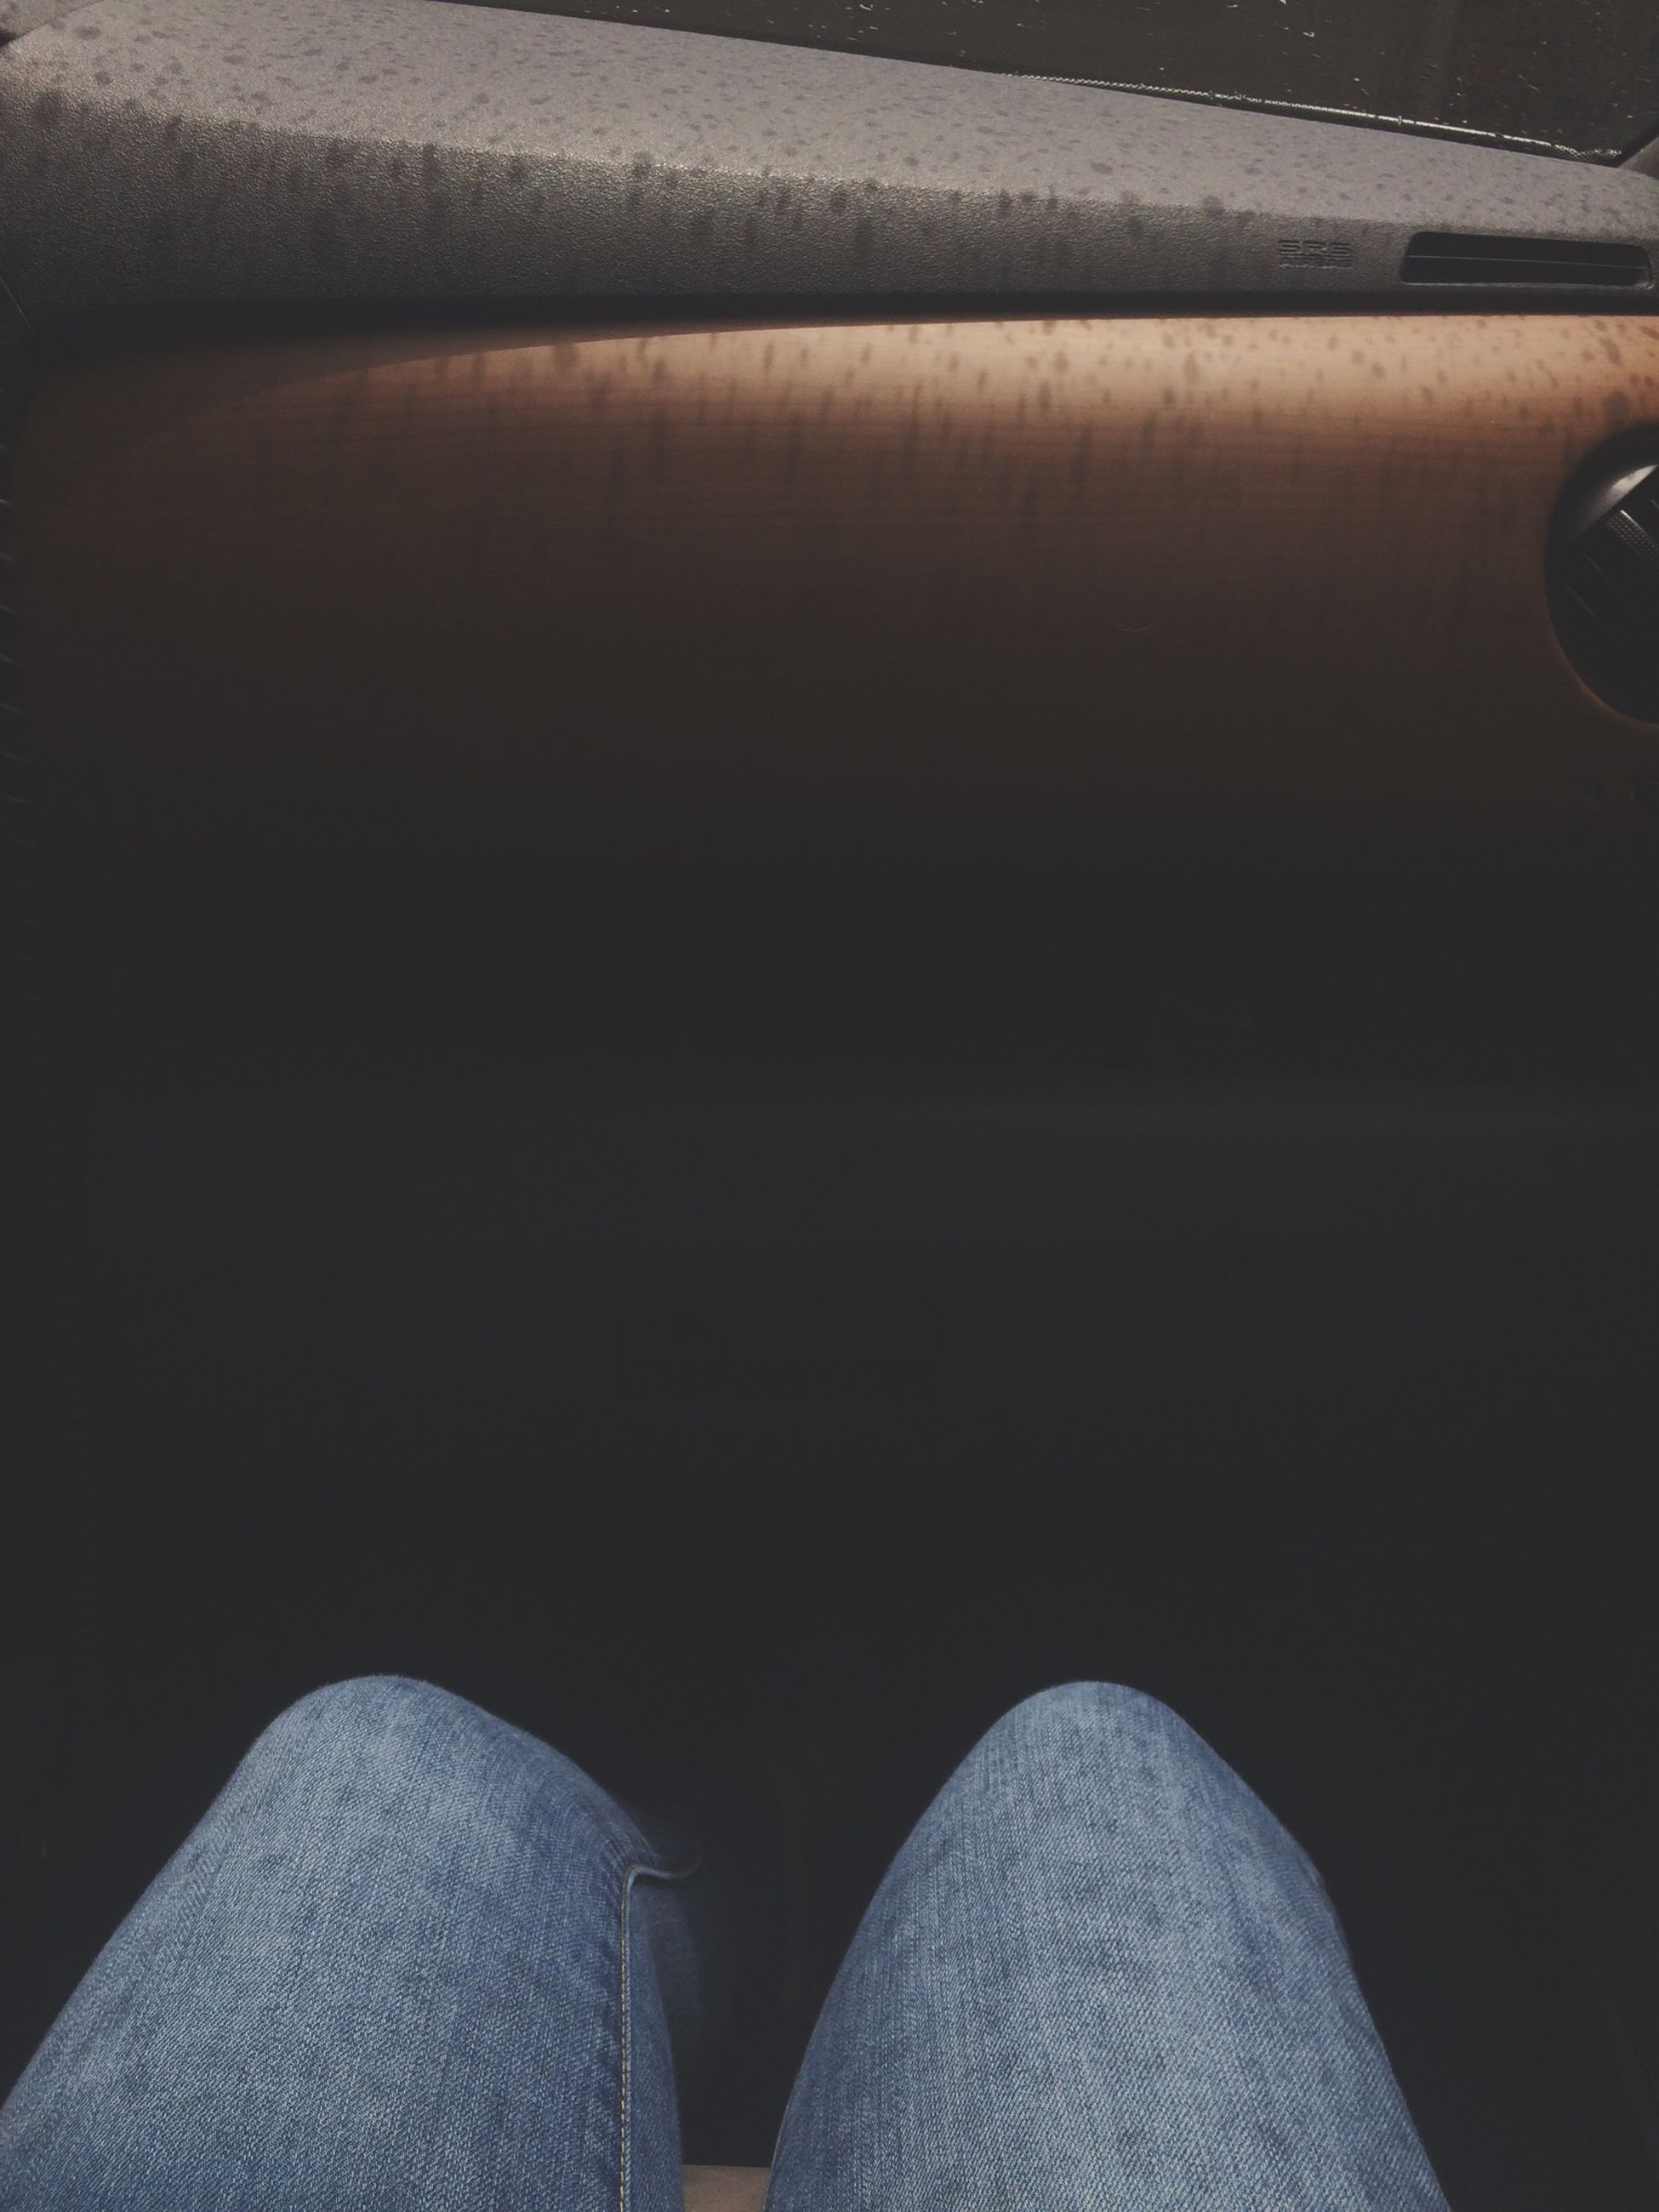 transportation, mode of transport, low section, vehicle interior, person, indoors, land vehicle, personal perspective, part of, car, shoe, close-up, travel, cropped, high angle view, car interior, journey